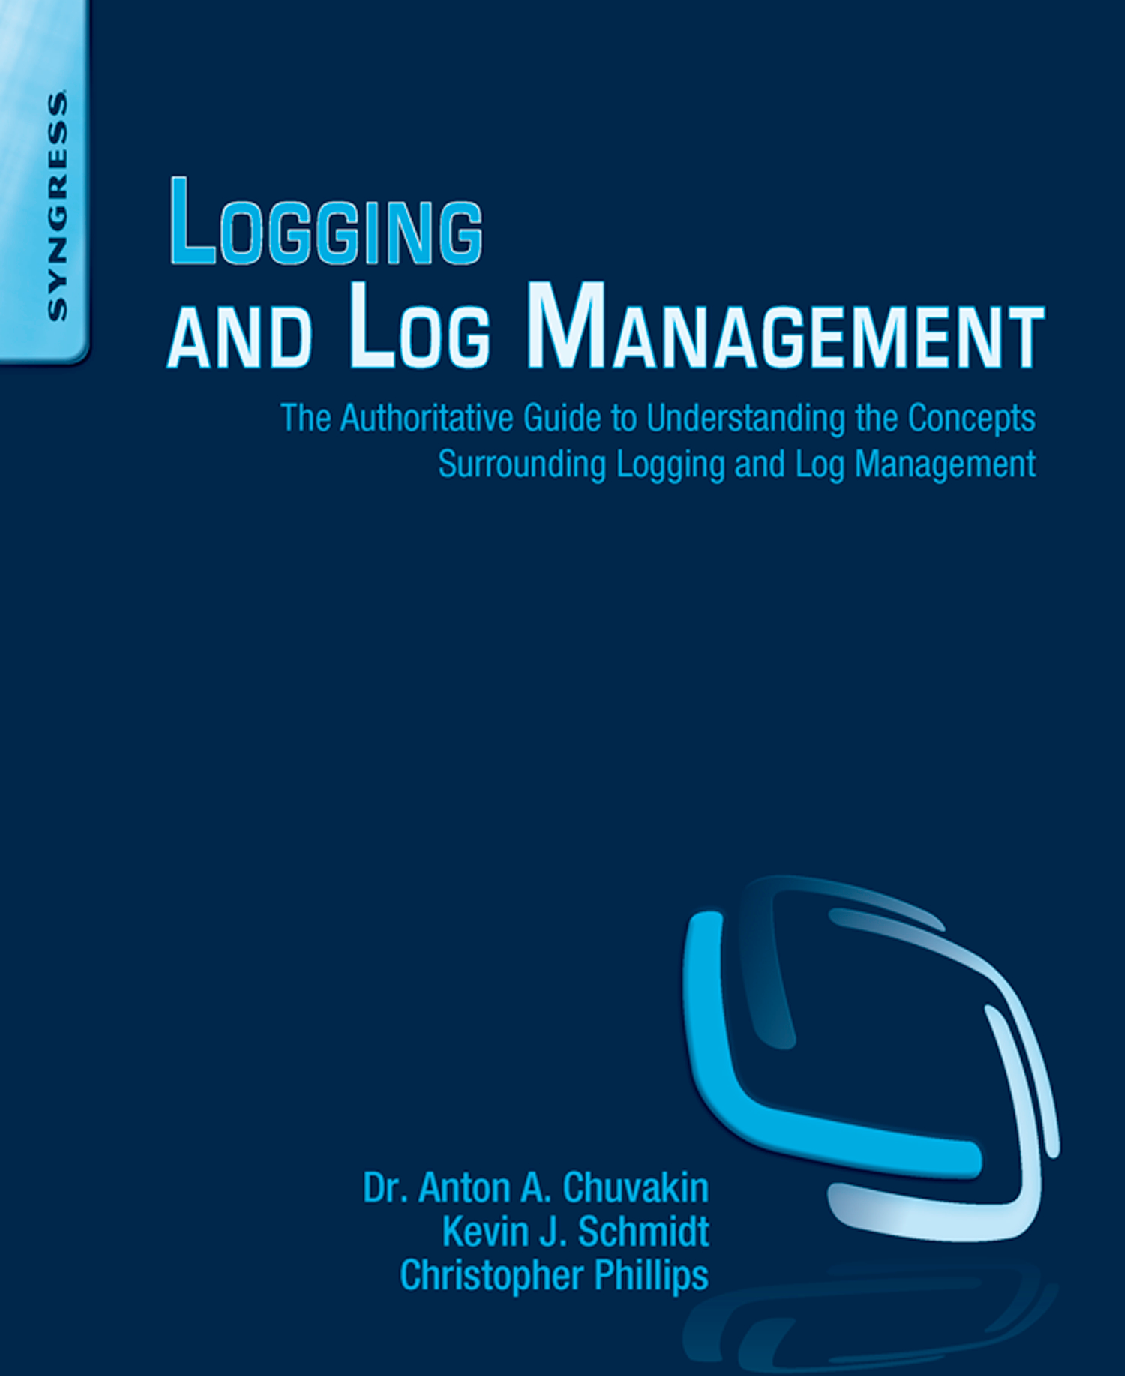 Logging And Log Management: The Authoritative Guide To